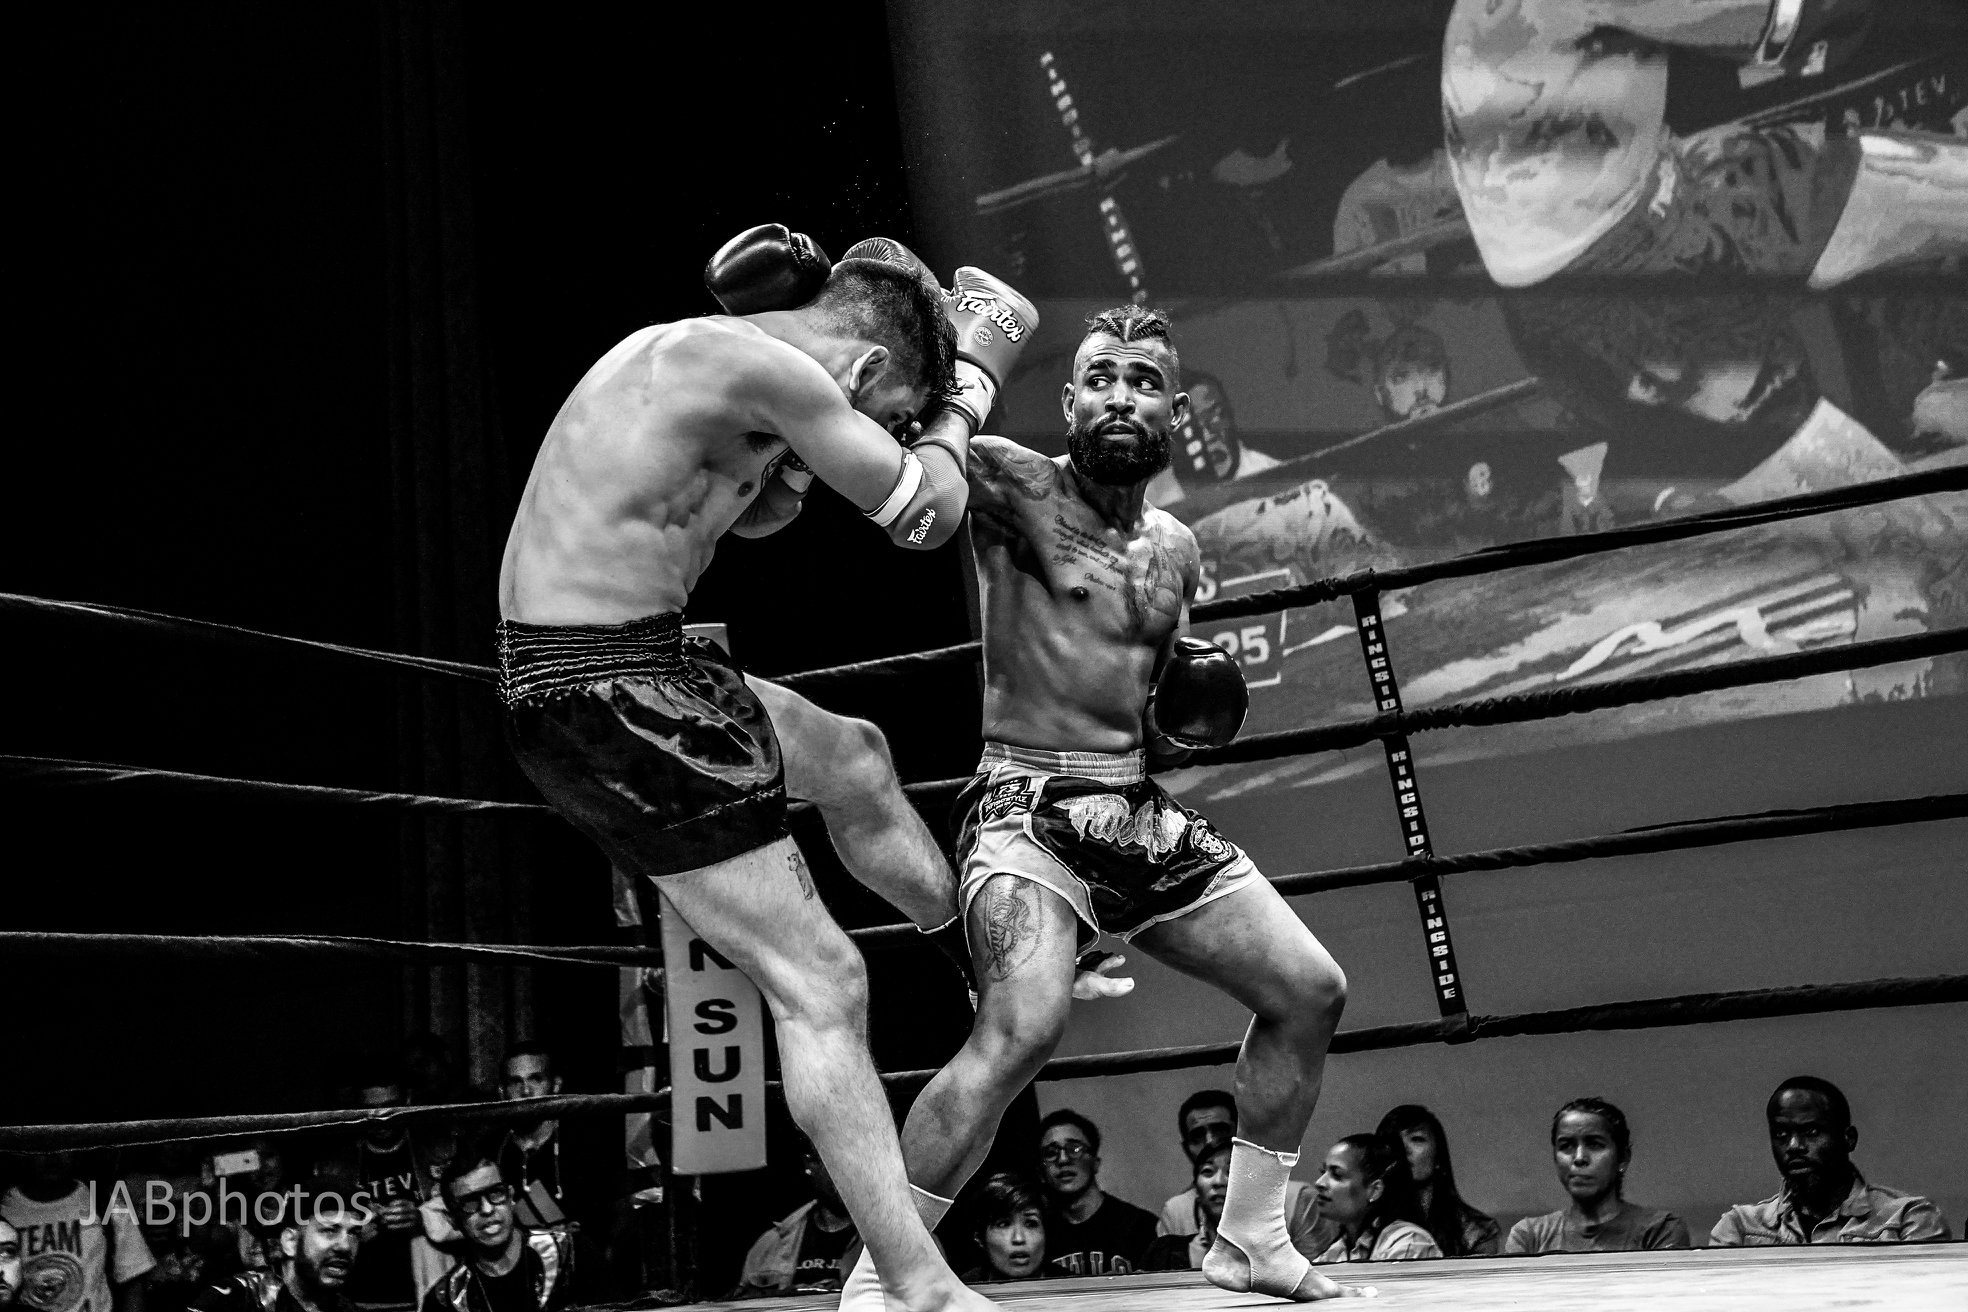 George slips a jab and lands a leg kick at a Friday Night Fights bout in New York City. George would go on to win by unanimous decision.